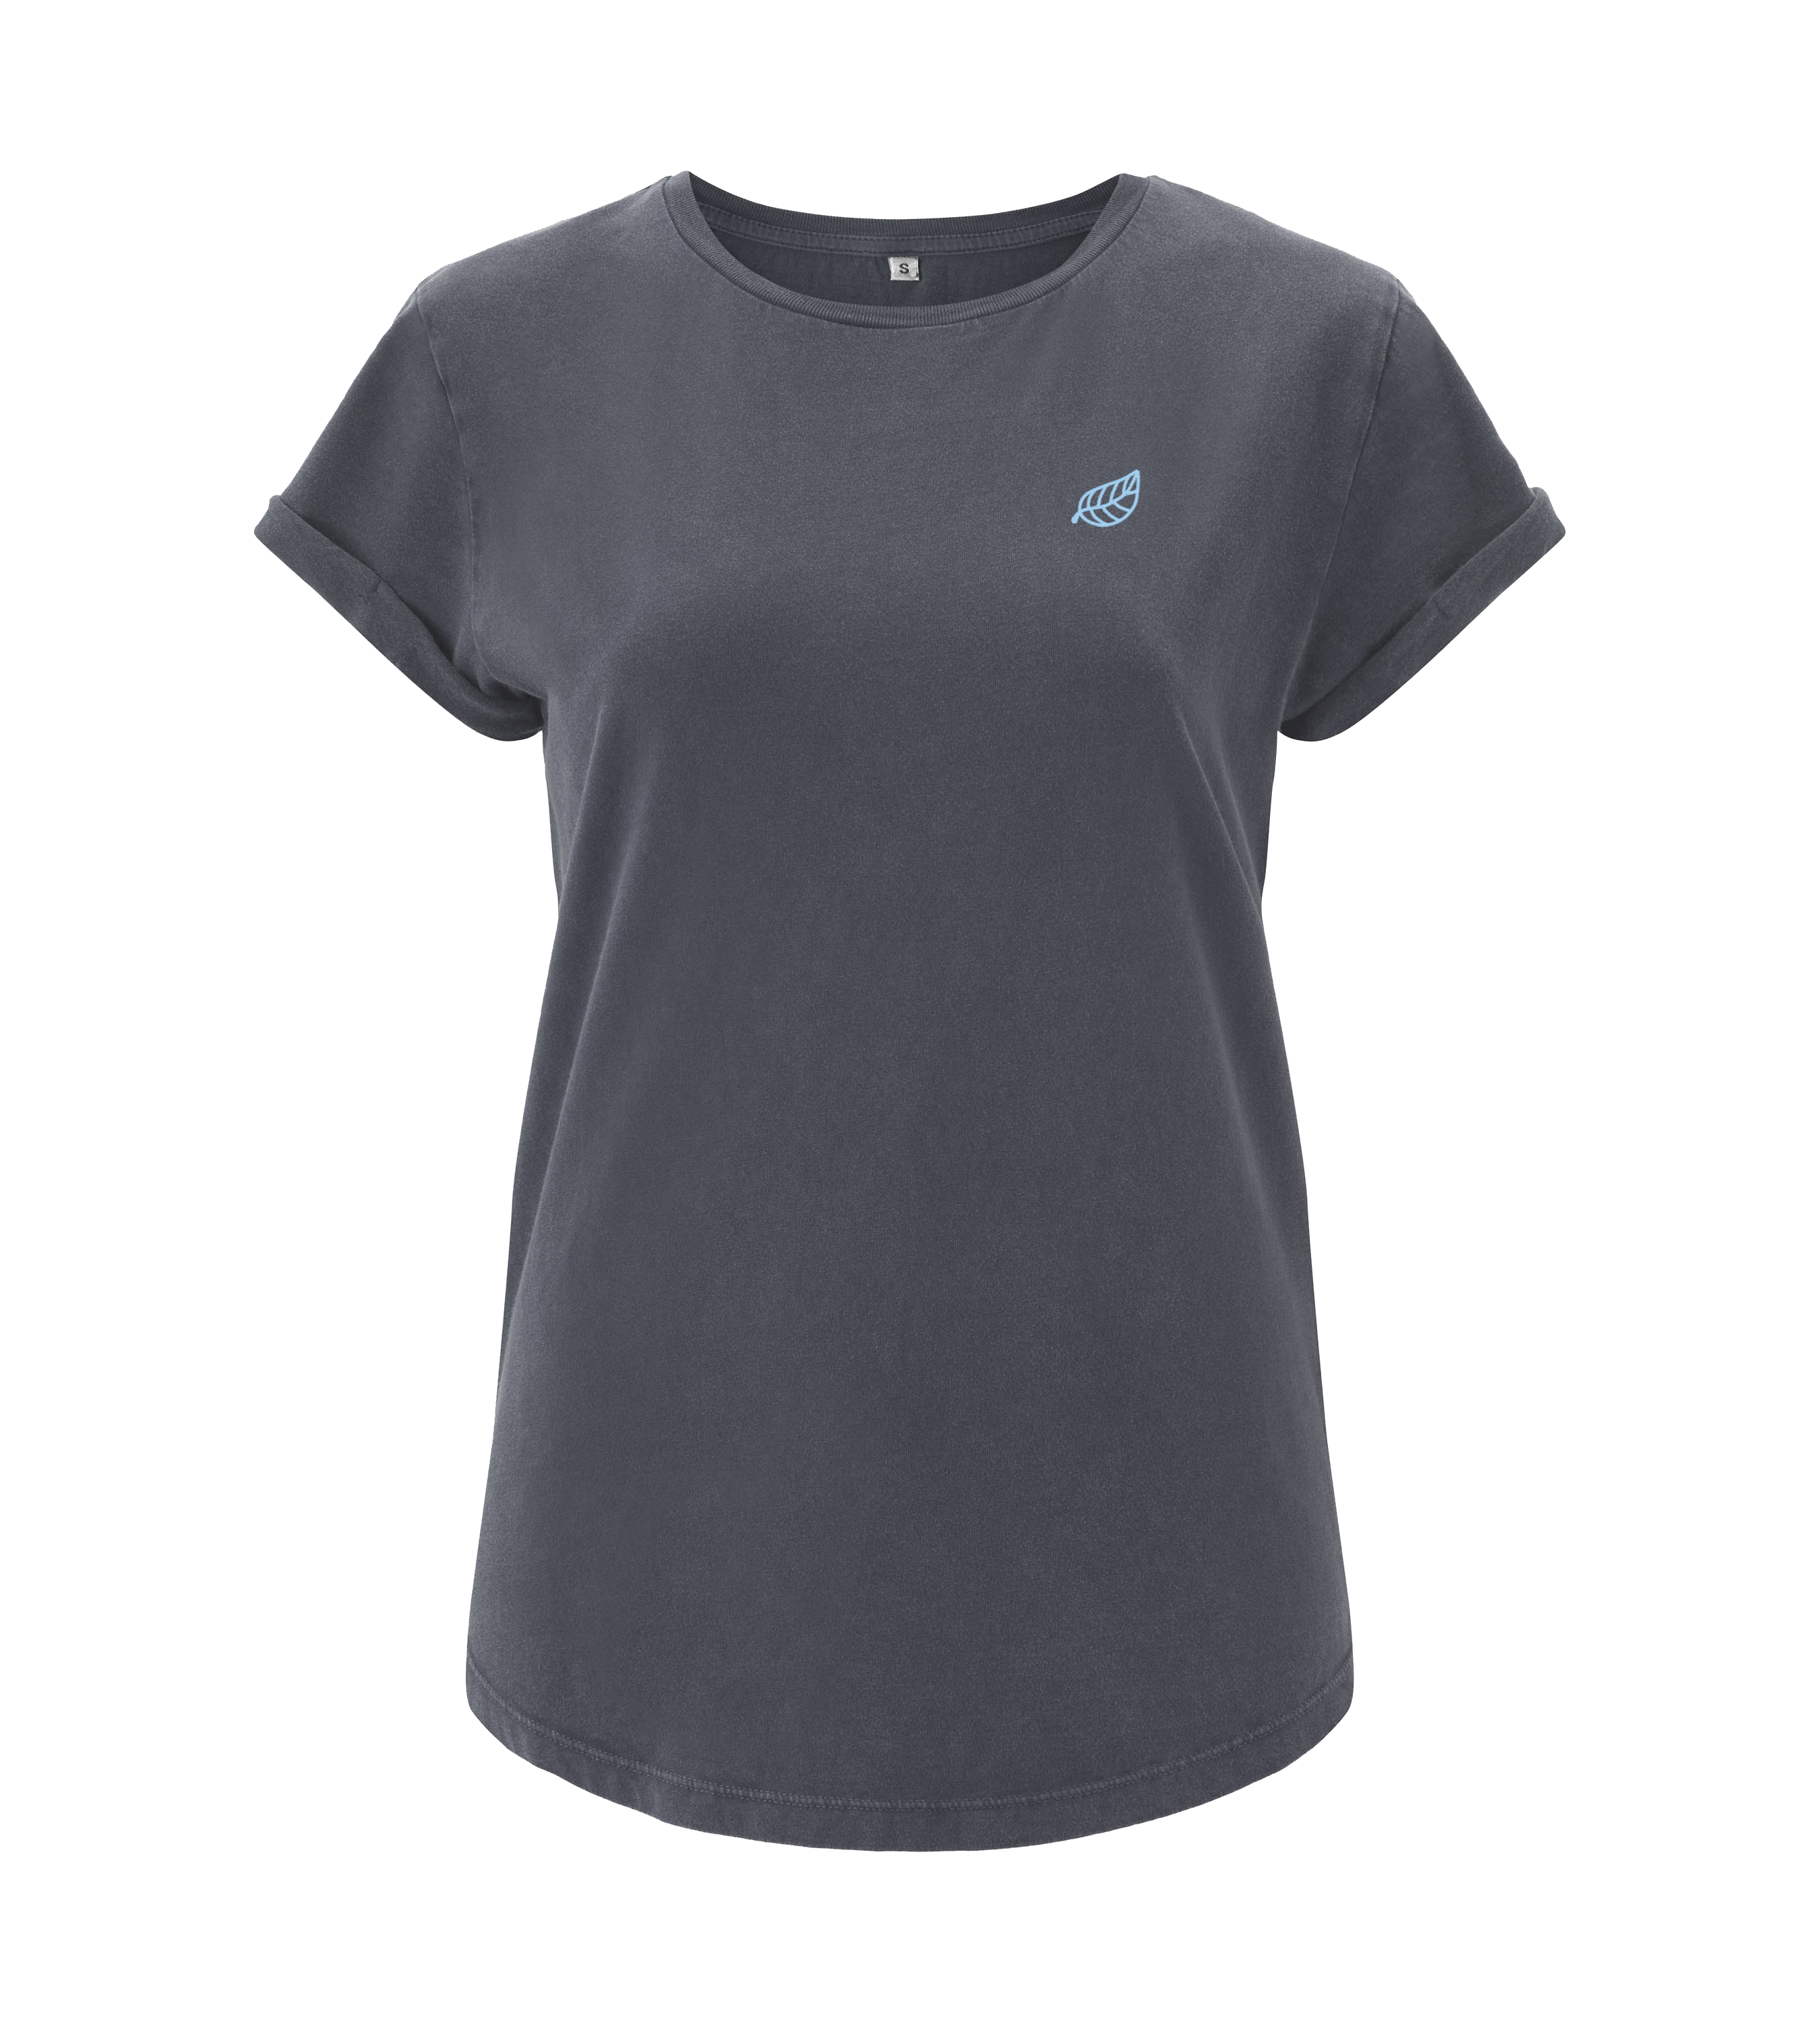 Basis Shirt - Light Charcoal - Frauen